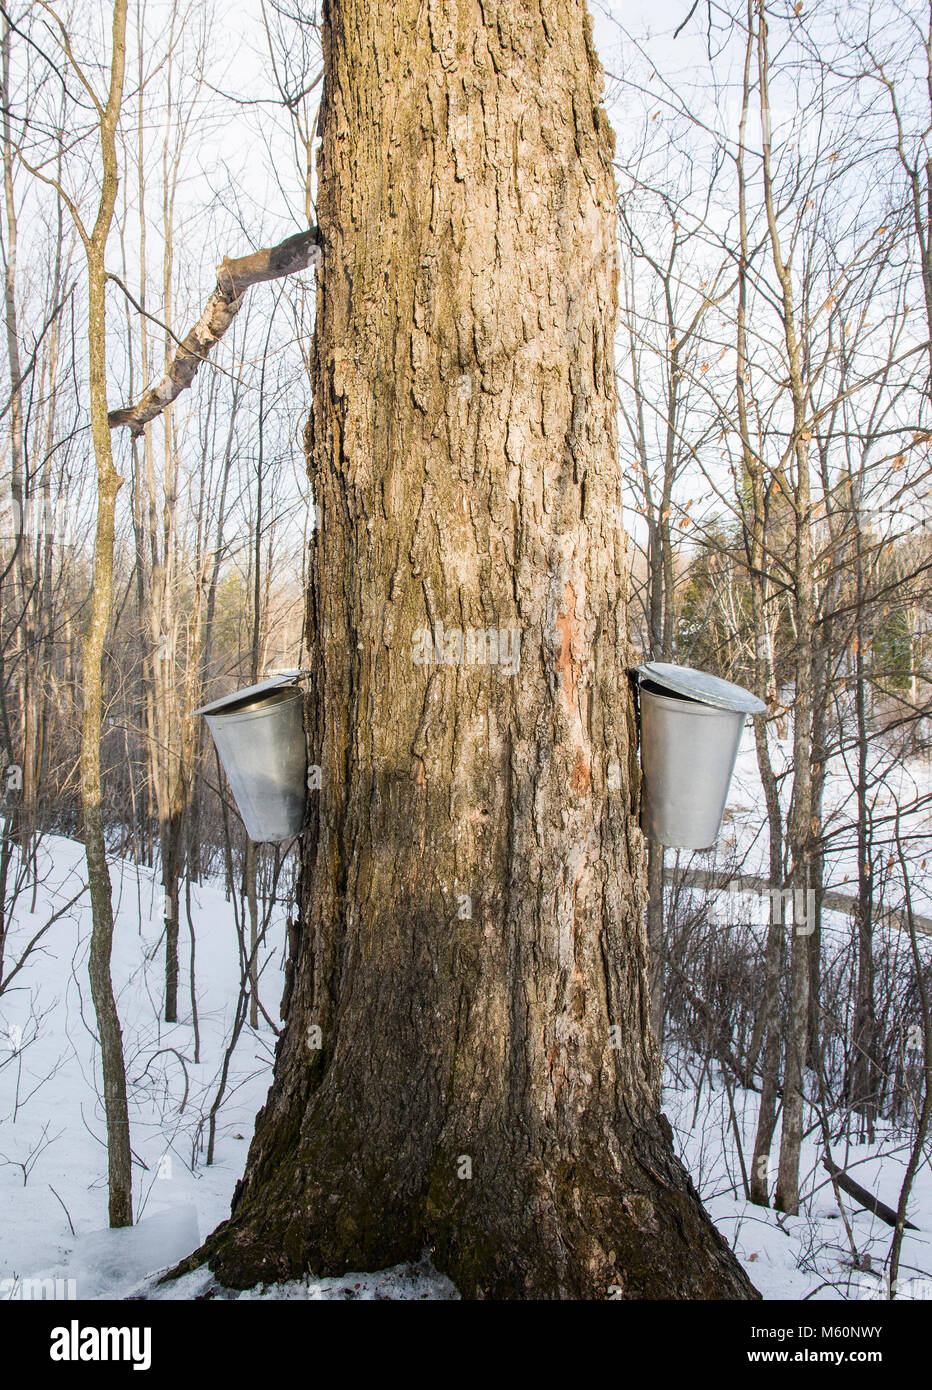 The first run of sap in Ontario for the 2018 maple syrup season. - Stock Image